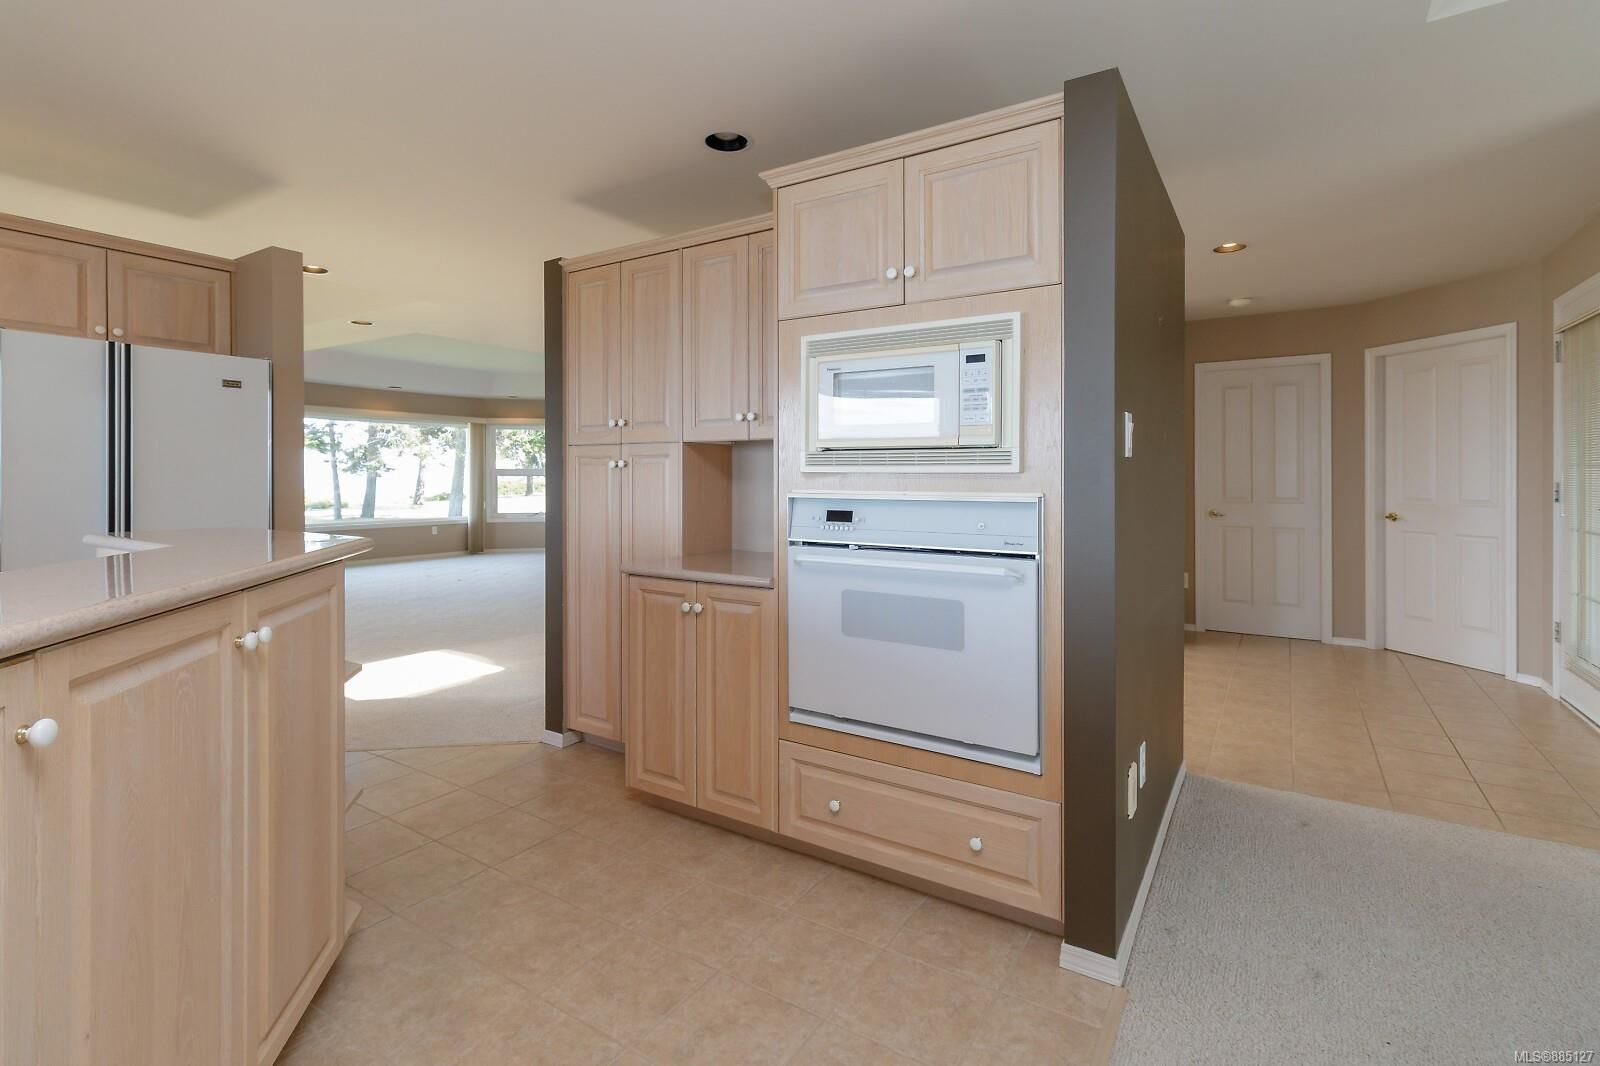 Photo 26: Photos: 26 529 Johnstone Rd in : PQ French Creek Row/Townhouse for sale (Parksville/Qualicum)  : MLS®# 885127